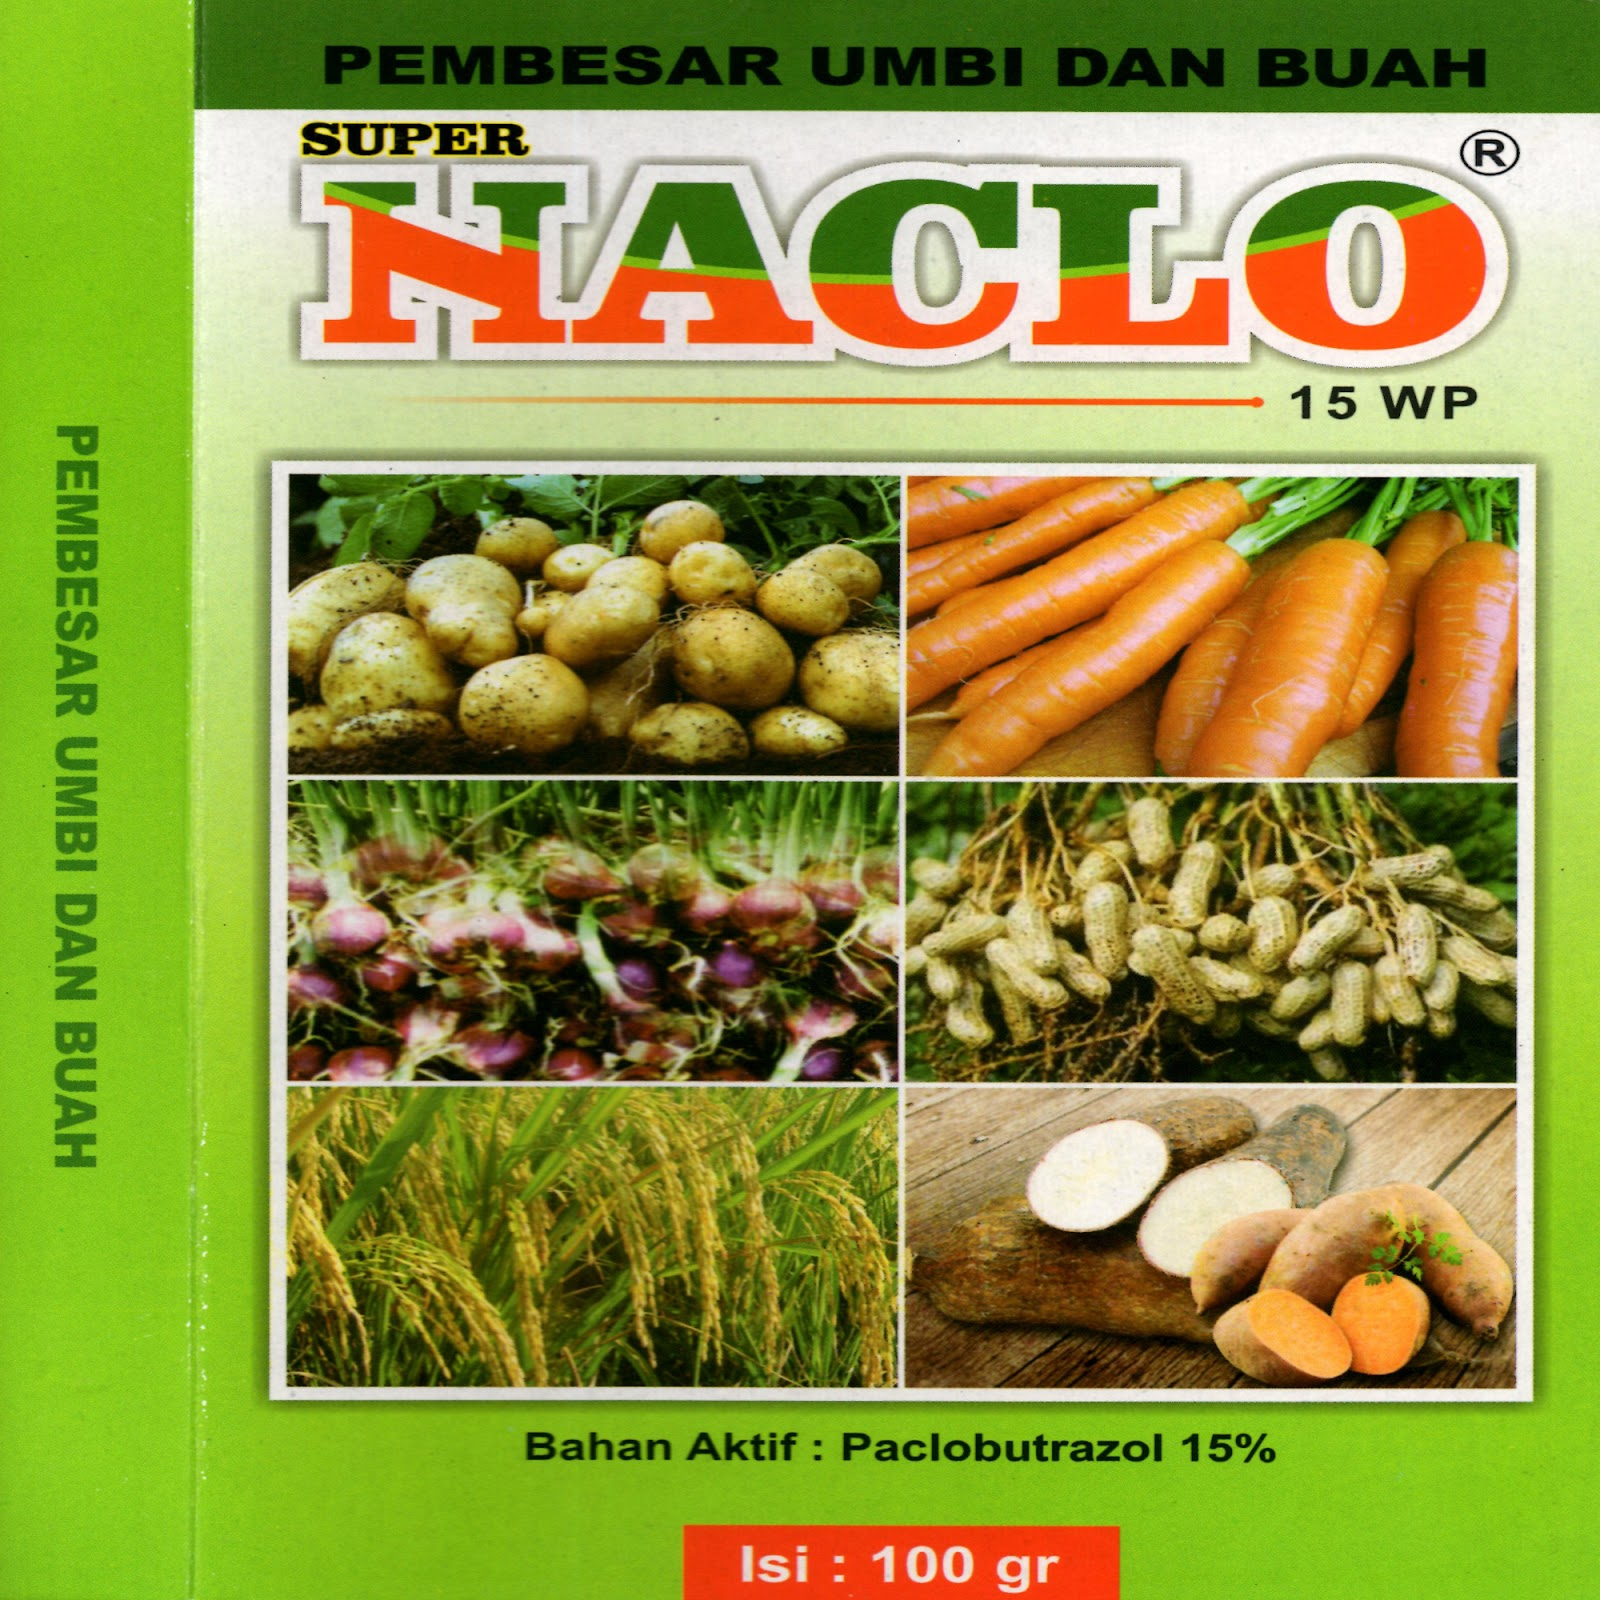 agro-chem, inc. essay Agro-chem, inc is a regional producer of agricultural chemicals based in houston texas that needs help making a lease versus purchase decision by understanding the material presented, we will be able to come to a decision.